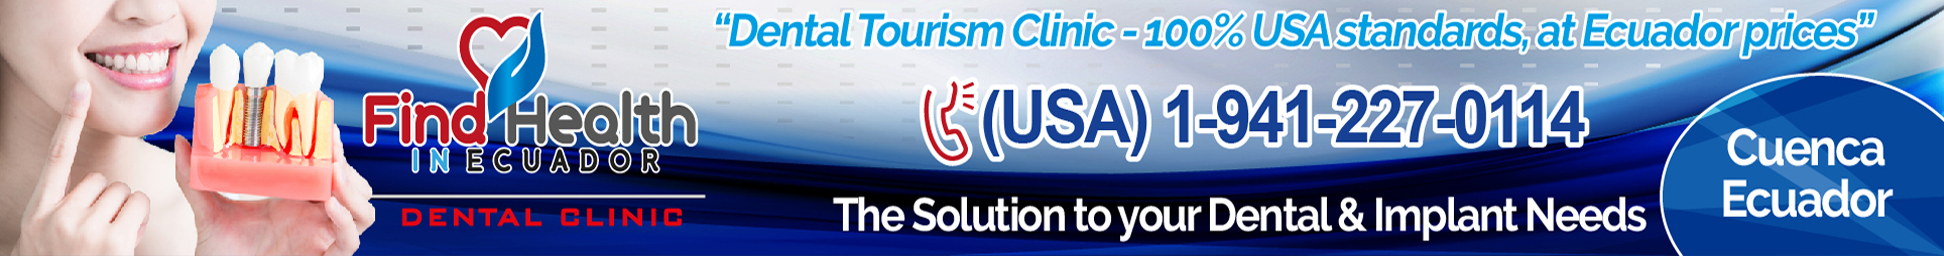 FHIE rectangular banner - FHIE Dental Tourism Banner - FHIE banner for Dental Tourism